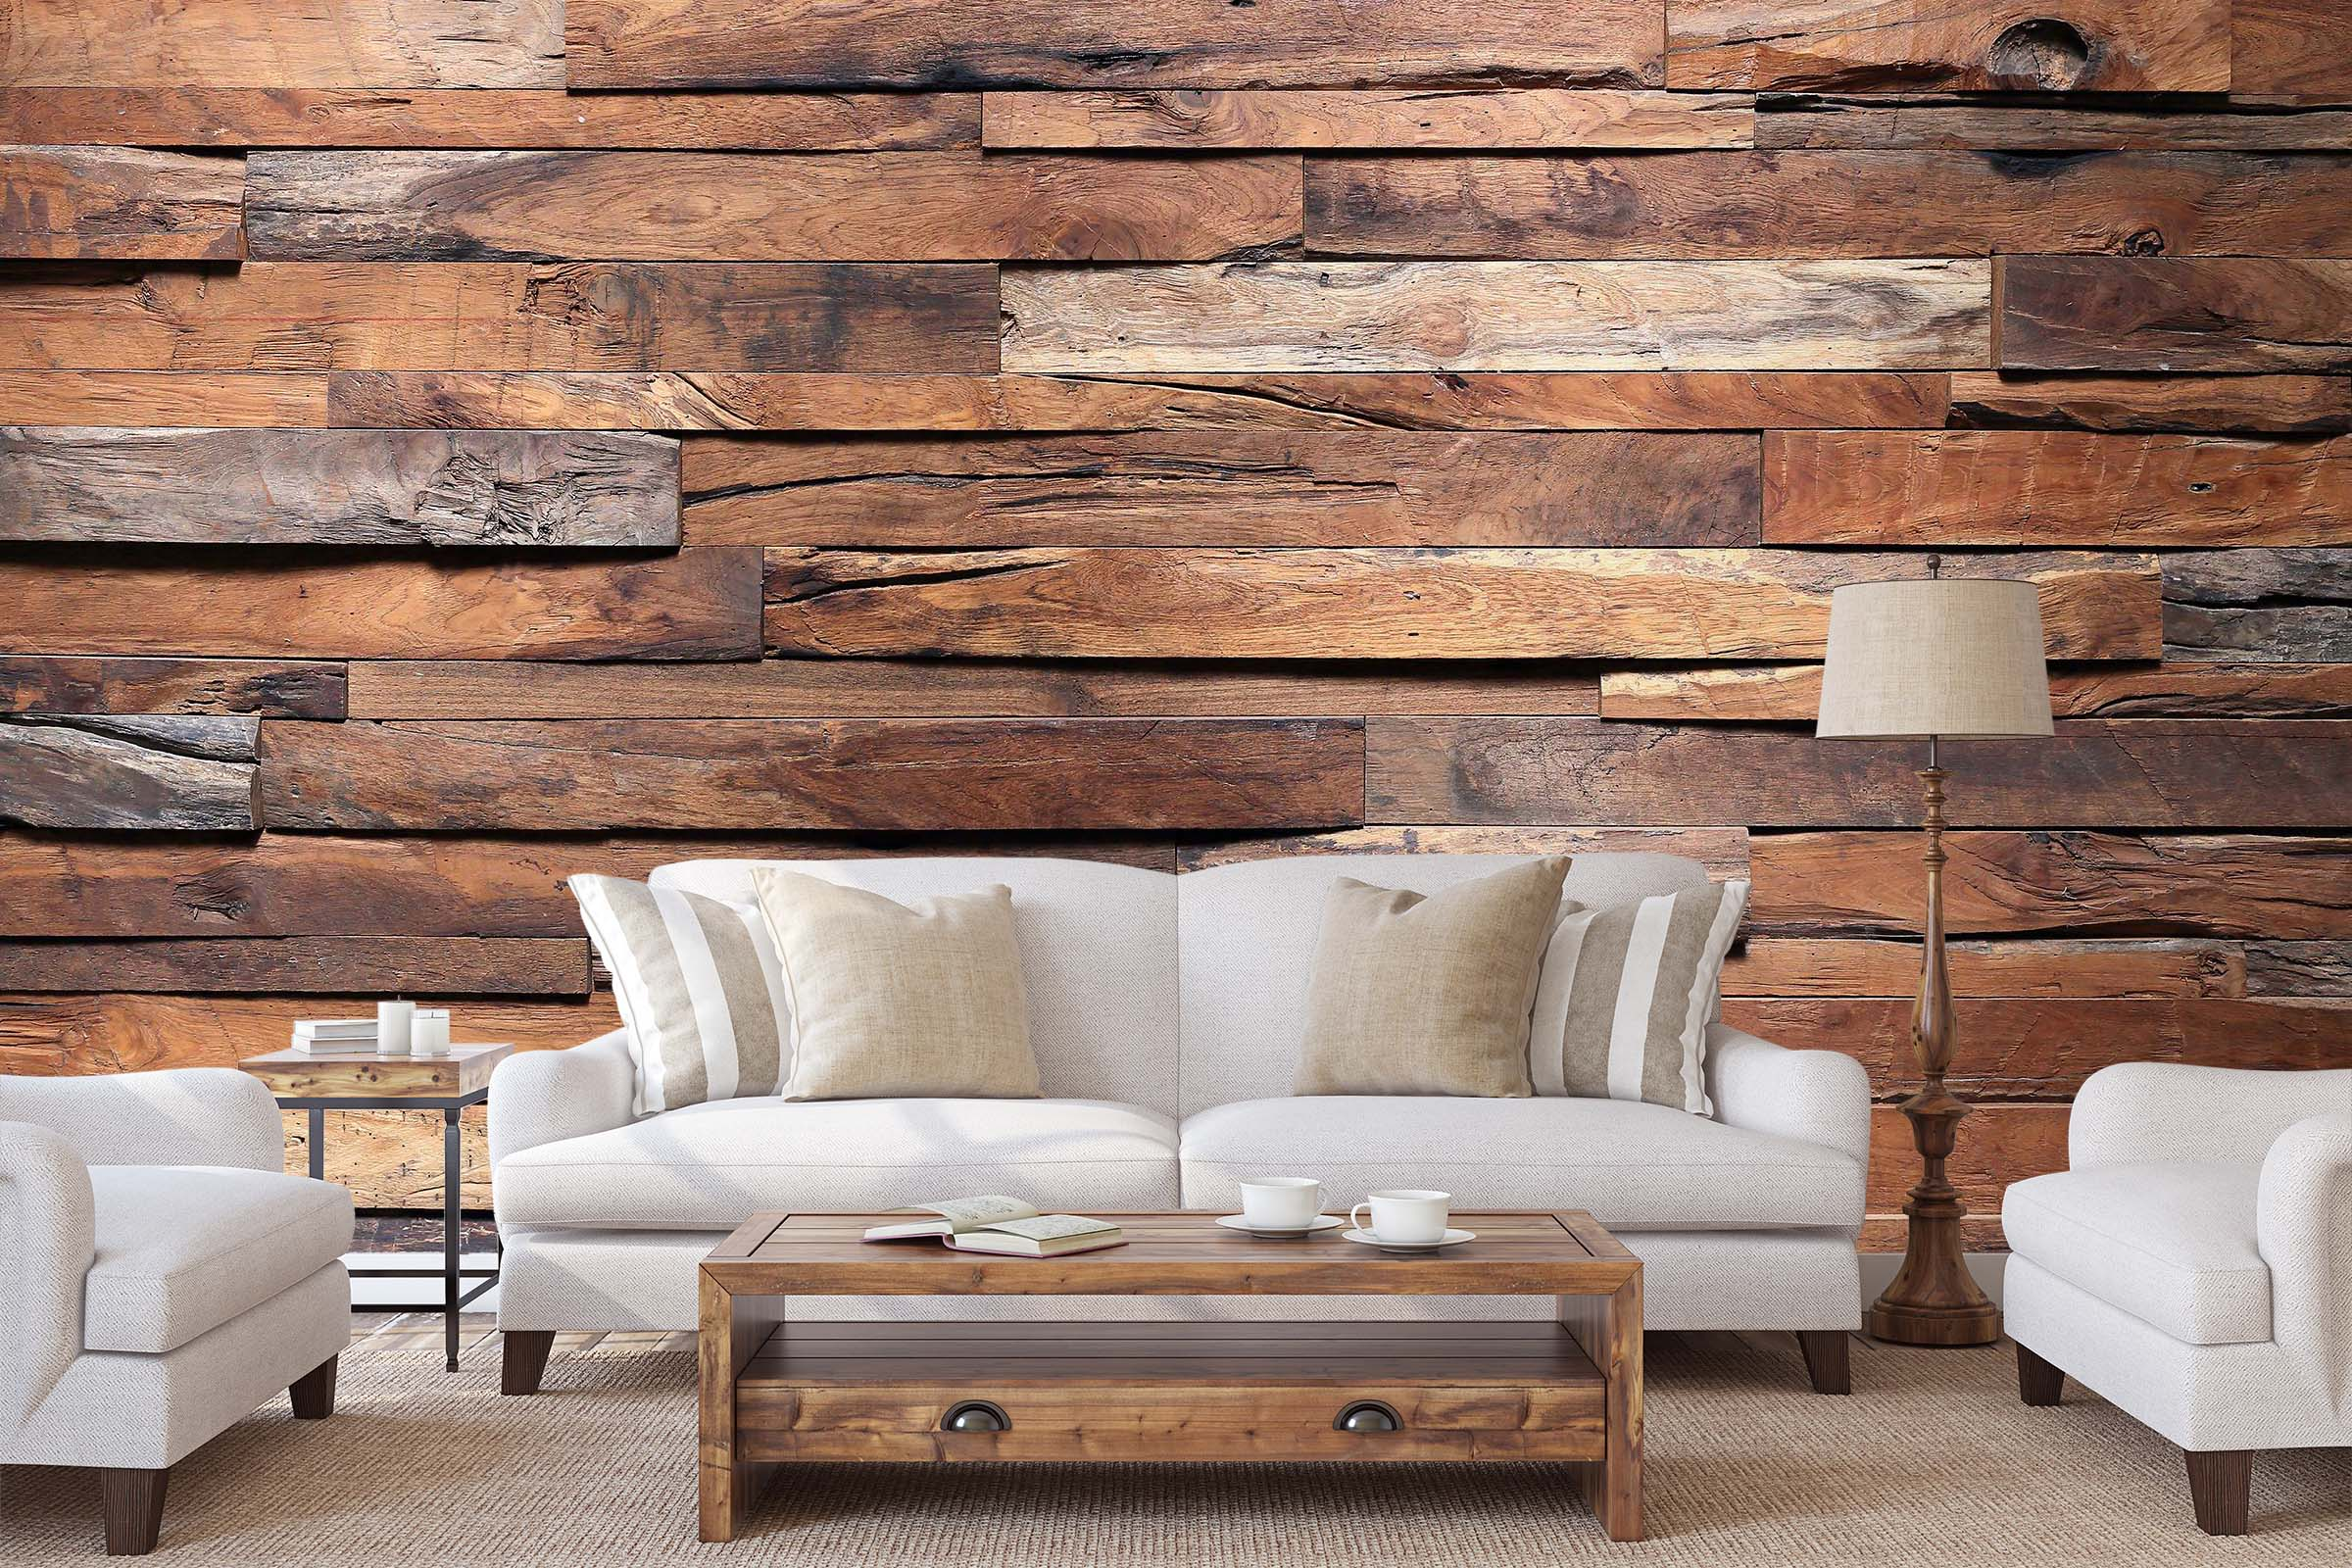 3D Wood Grain 20 Wall Murals